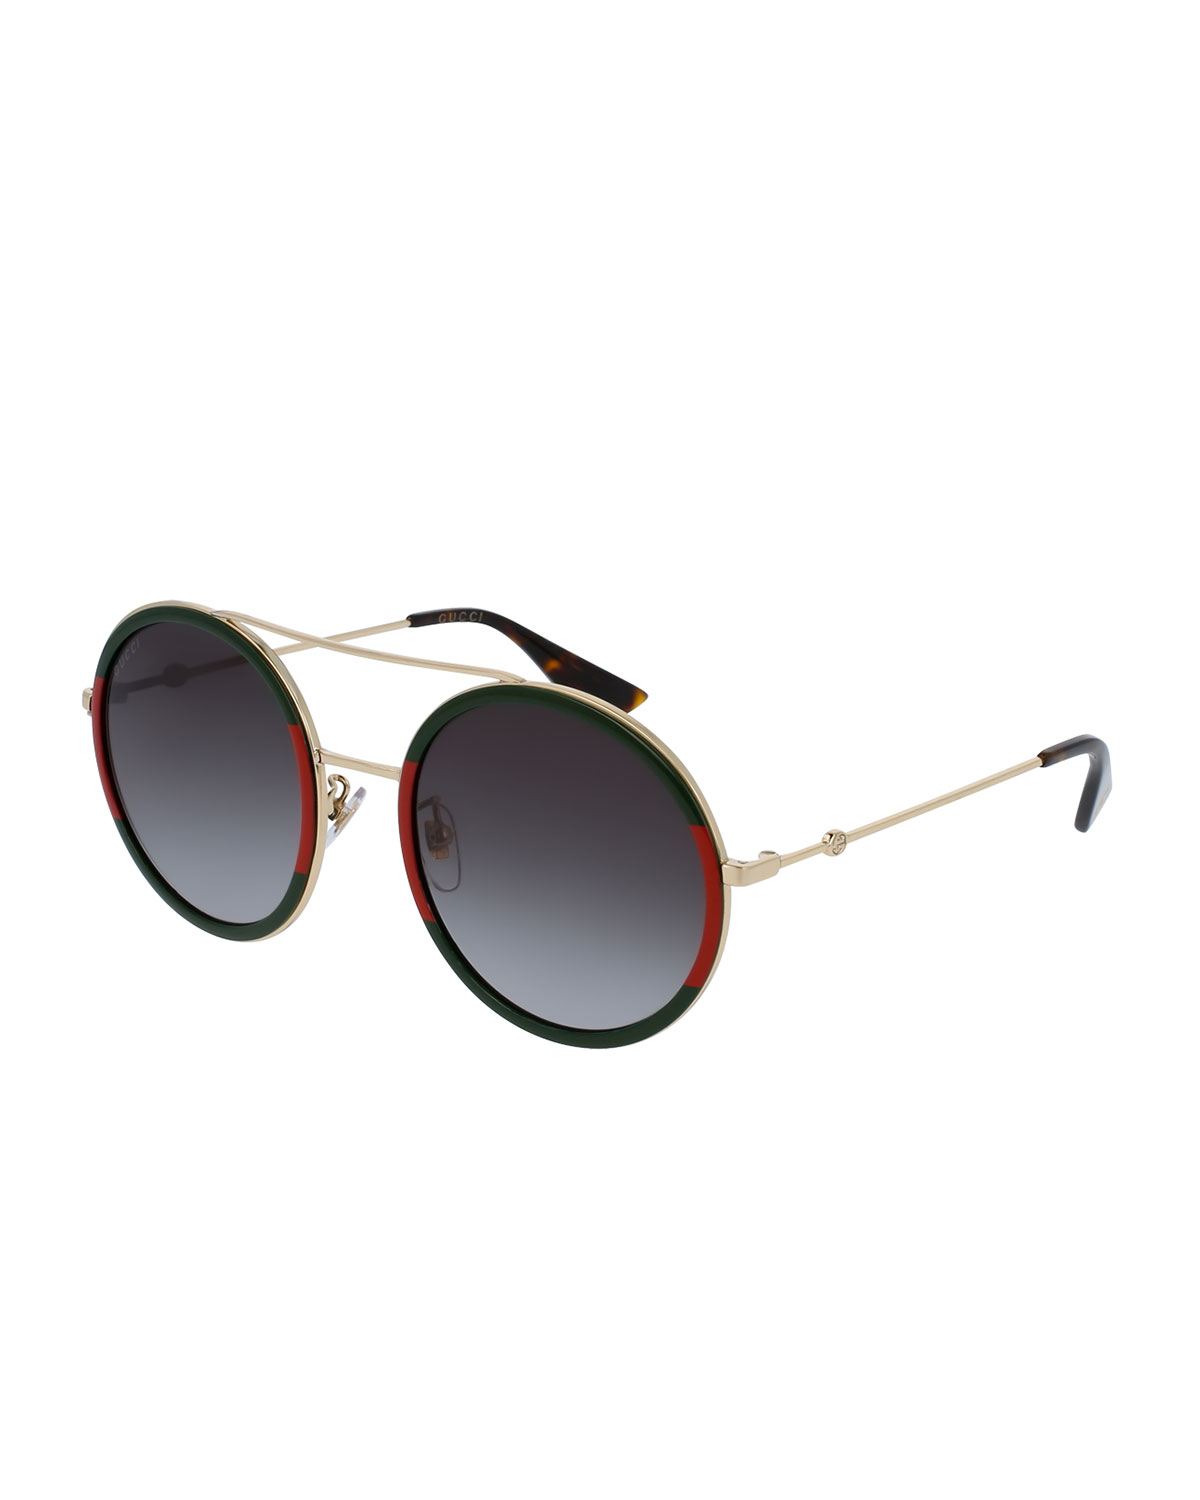 0896f0025e Gucci Web Round Sunglasses